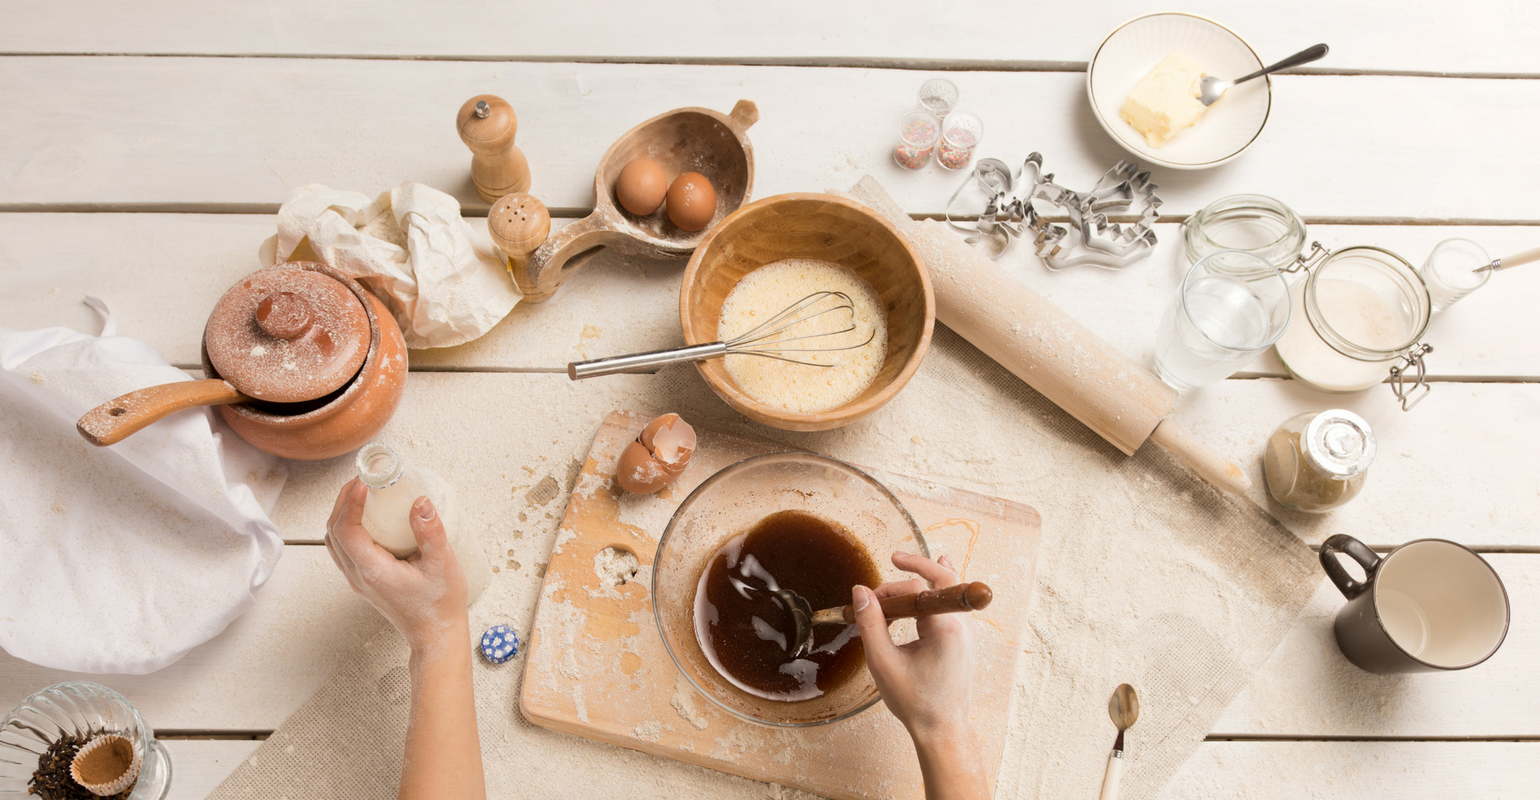 Lessons learned from the Great British Bake Off